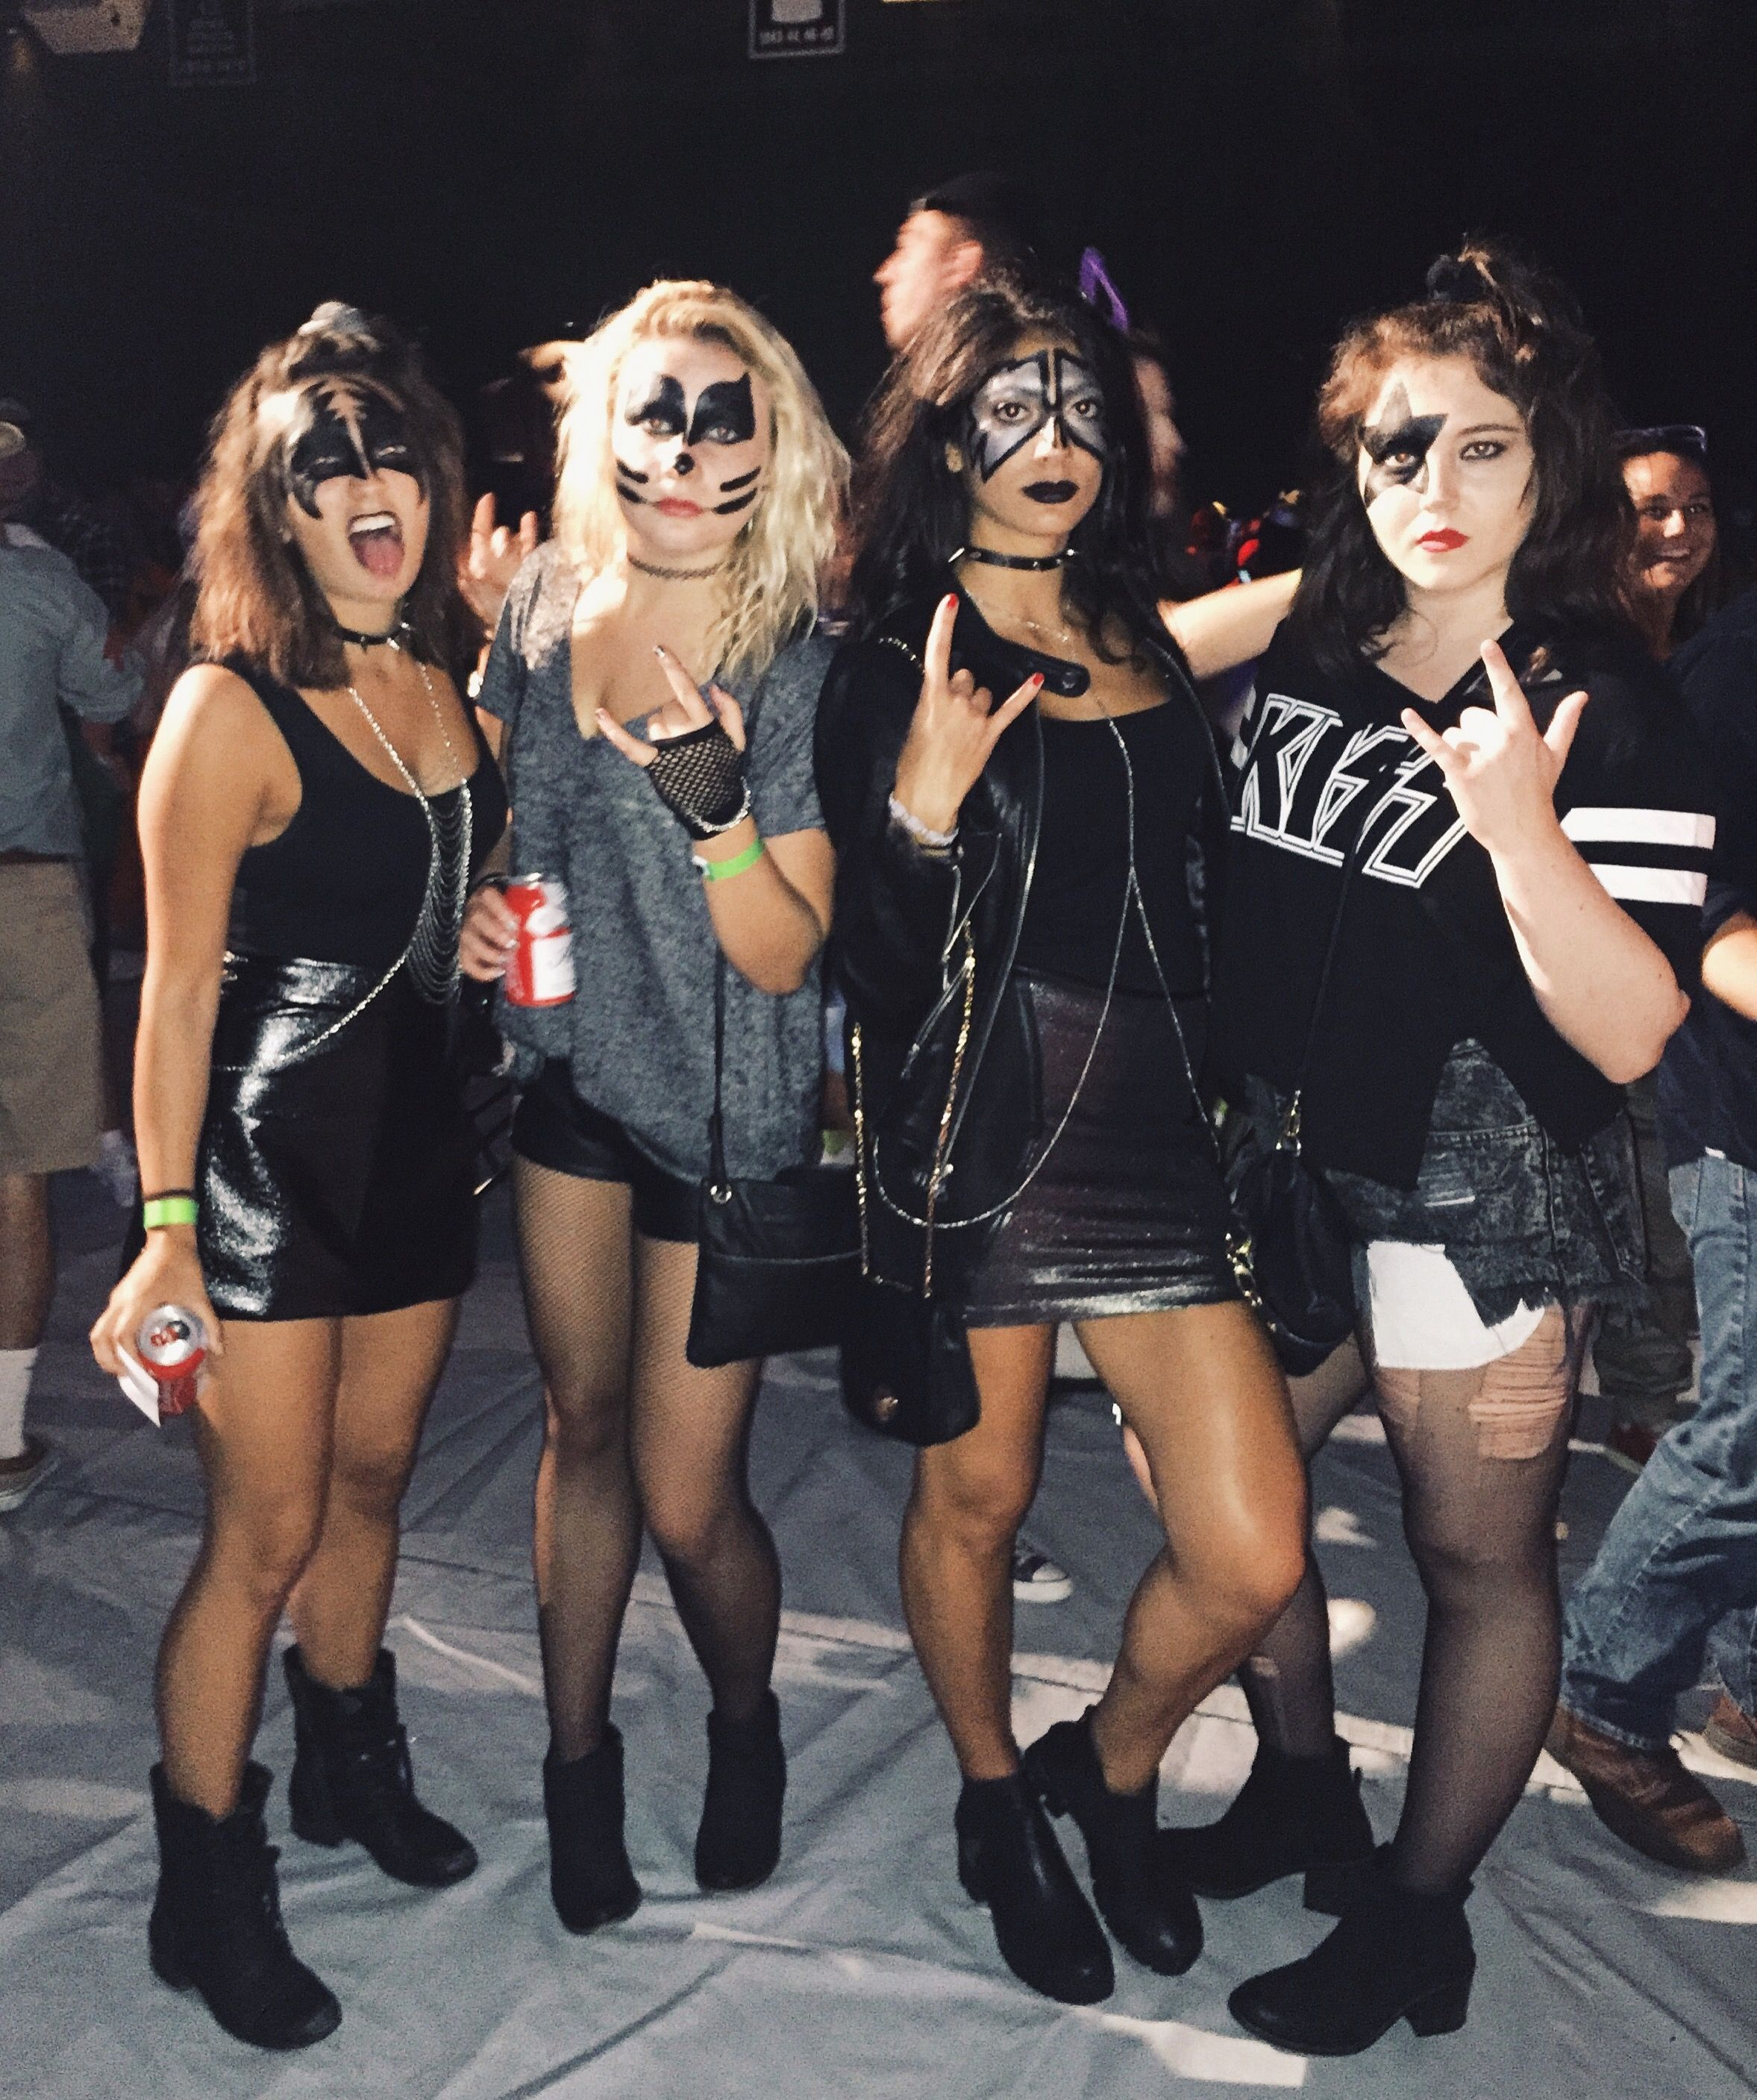 Halloween Costume DIY Group Costume KISS Costume Girls KISS Costume Famous Groups Leather Costume KISS Face Paint College Halloween Costumes  sc 1 st  Pinterest & Halloween Costume DIY Group Costume KISS Costume Girls KISS ...